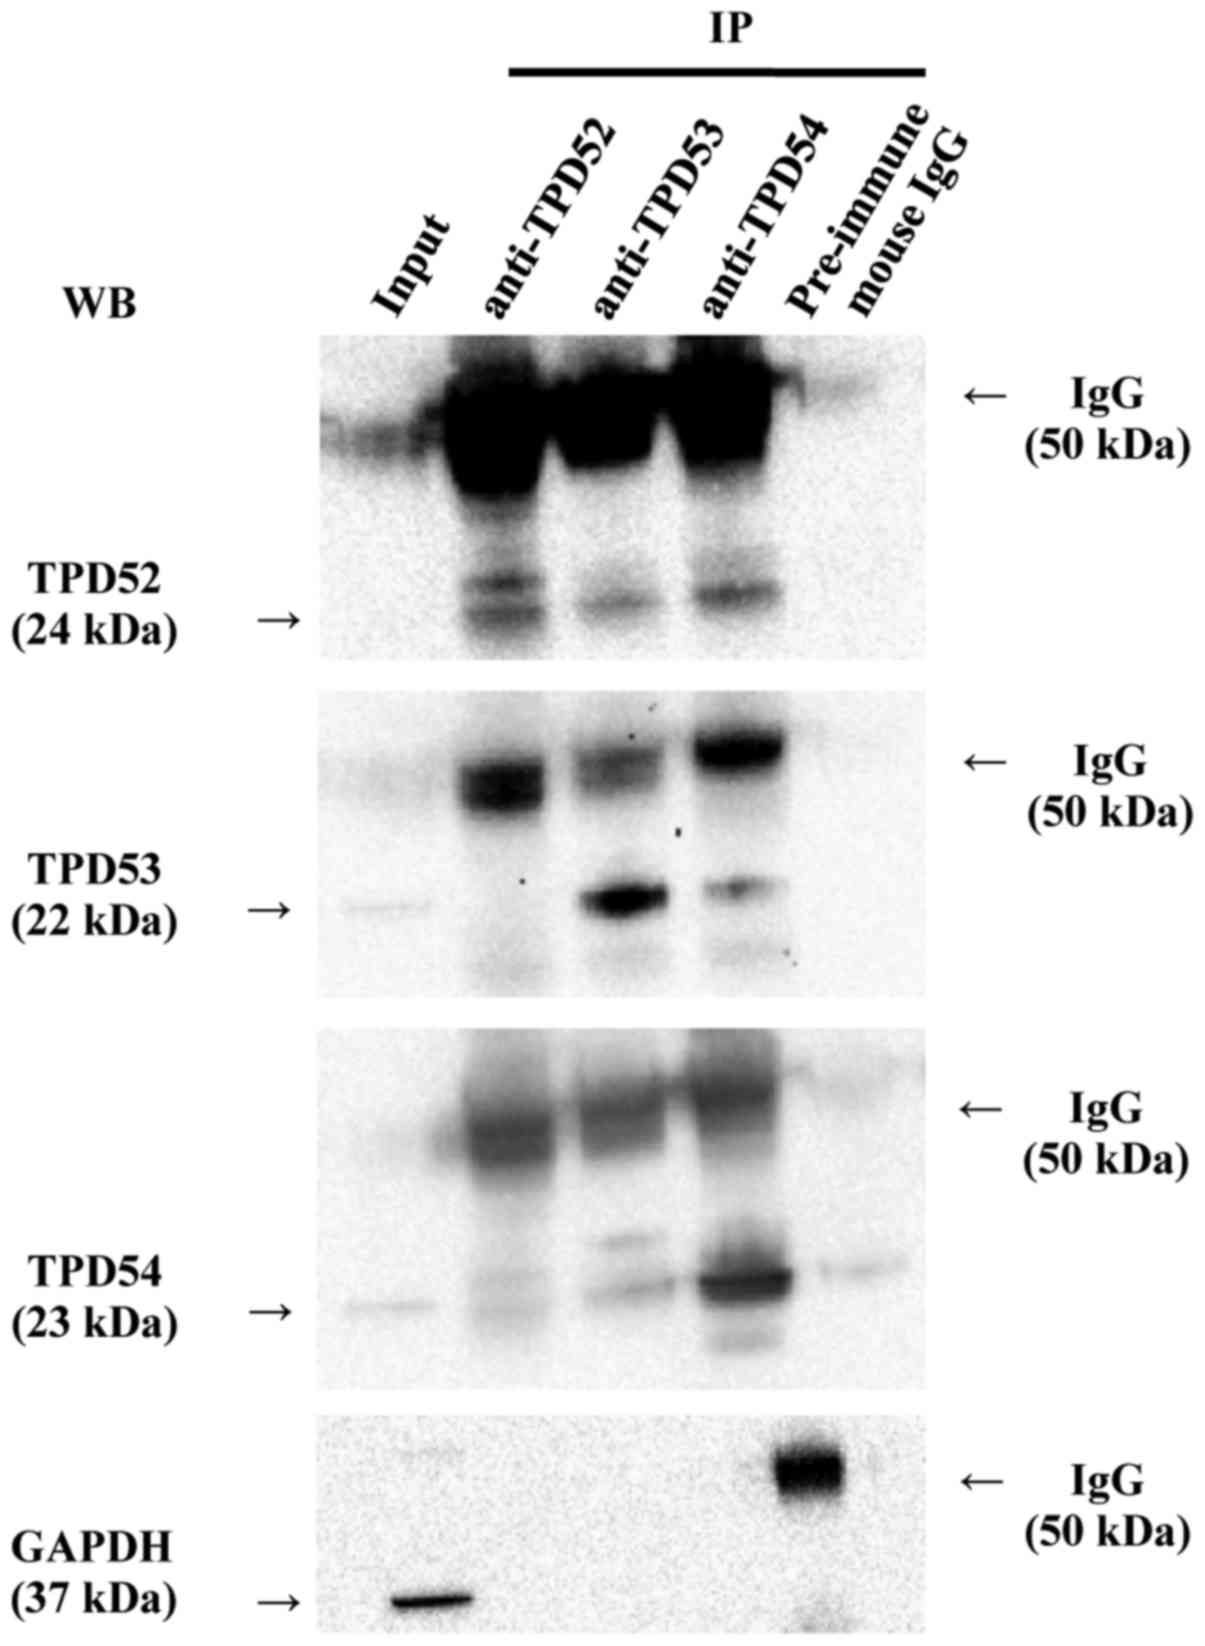 Opposite effects of tumor protein D (TPD) 52 and TPD54 on oral